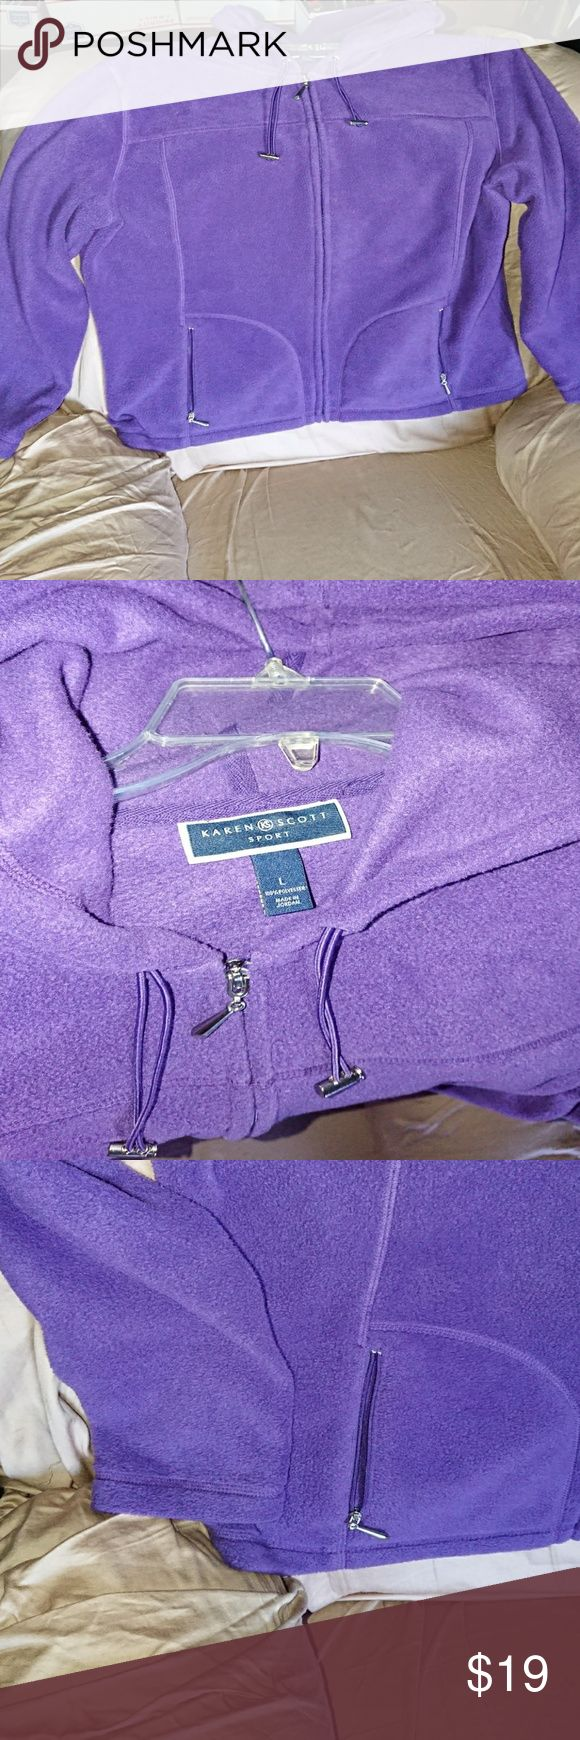 Karen Scott L Sport hooded fleece jacket purple Pre-owned no defects Karen Scott Jackets & Coats Utility Jackets